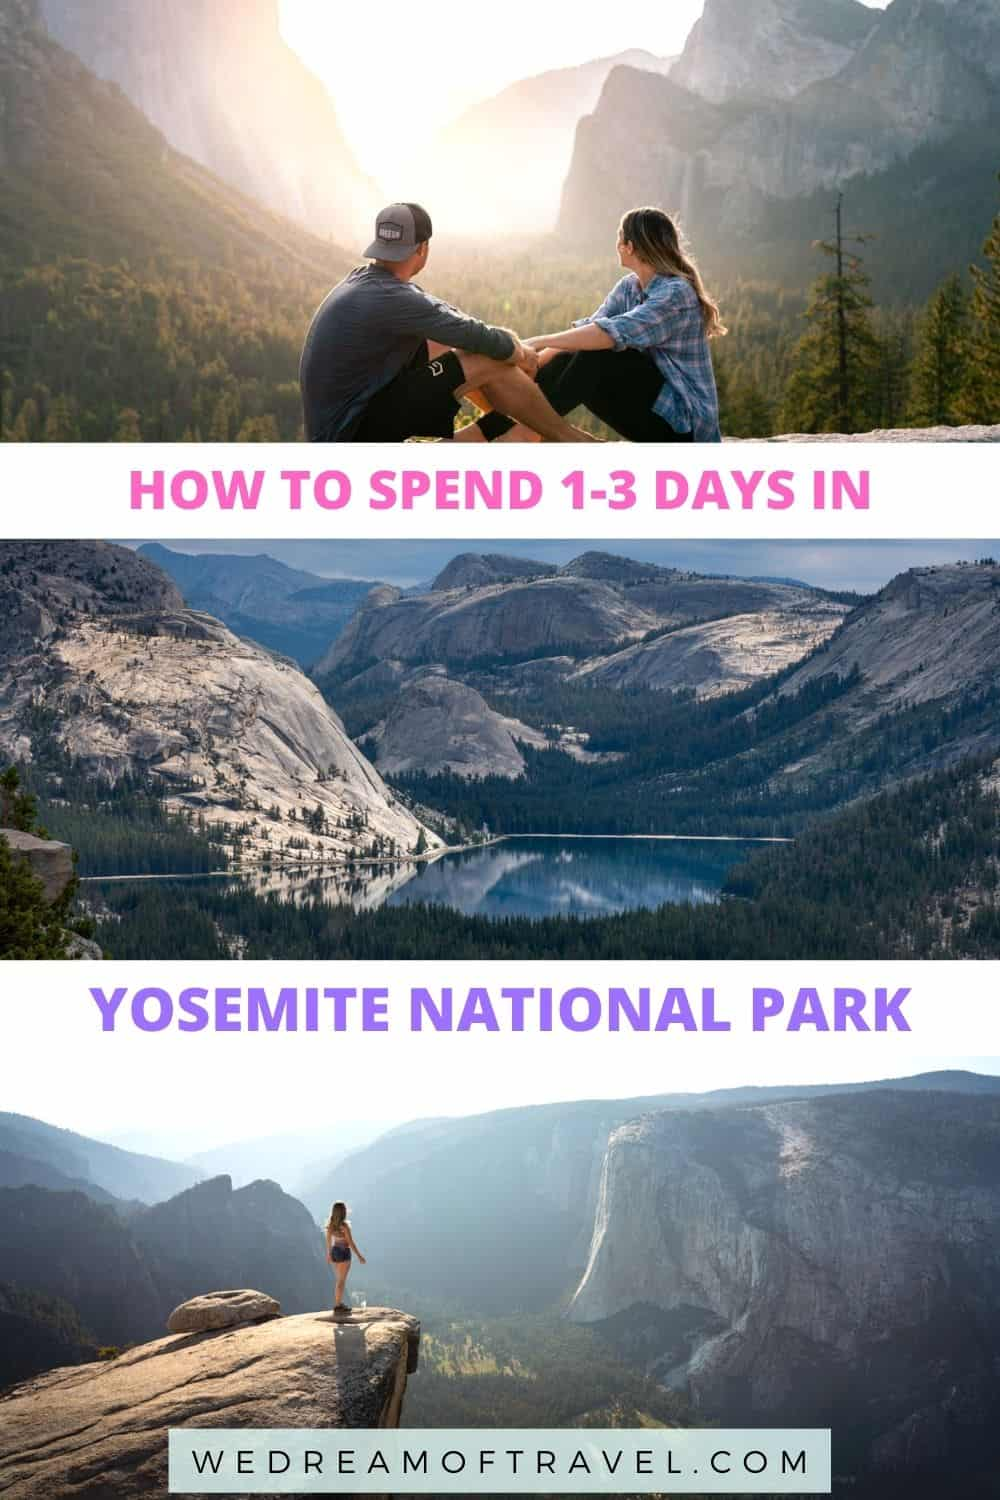 Discover all the must-see locations in Yosemite National Park and the perfect Yosemite itinerary for 1, 2 or 3 days in this spectacular national park.